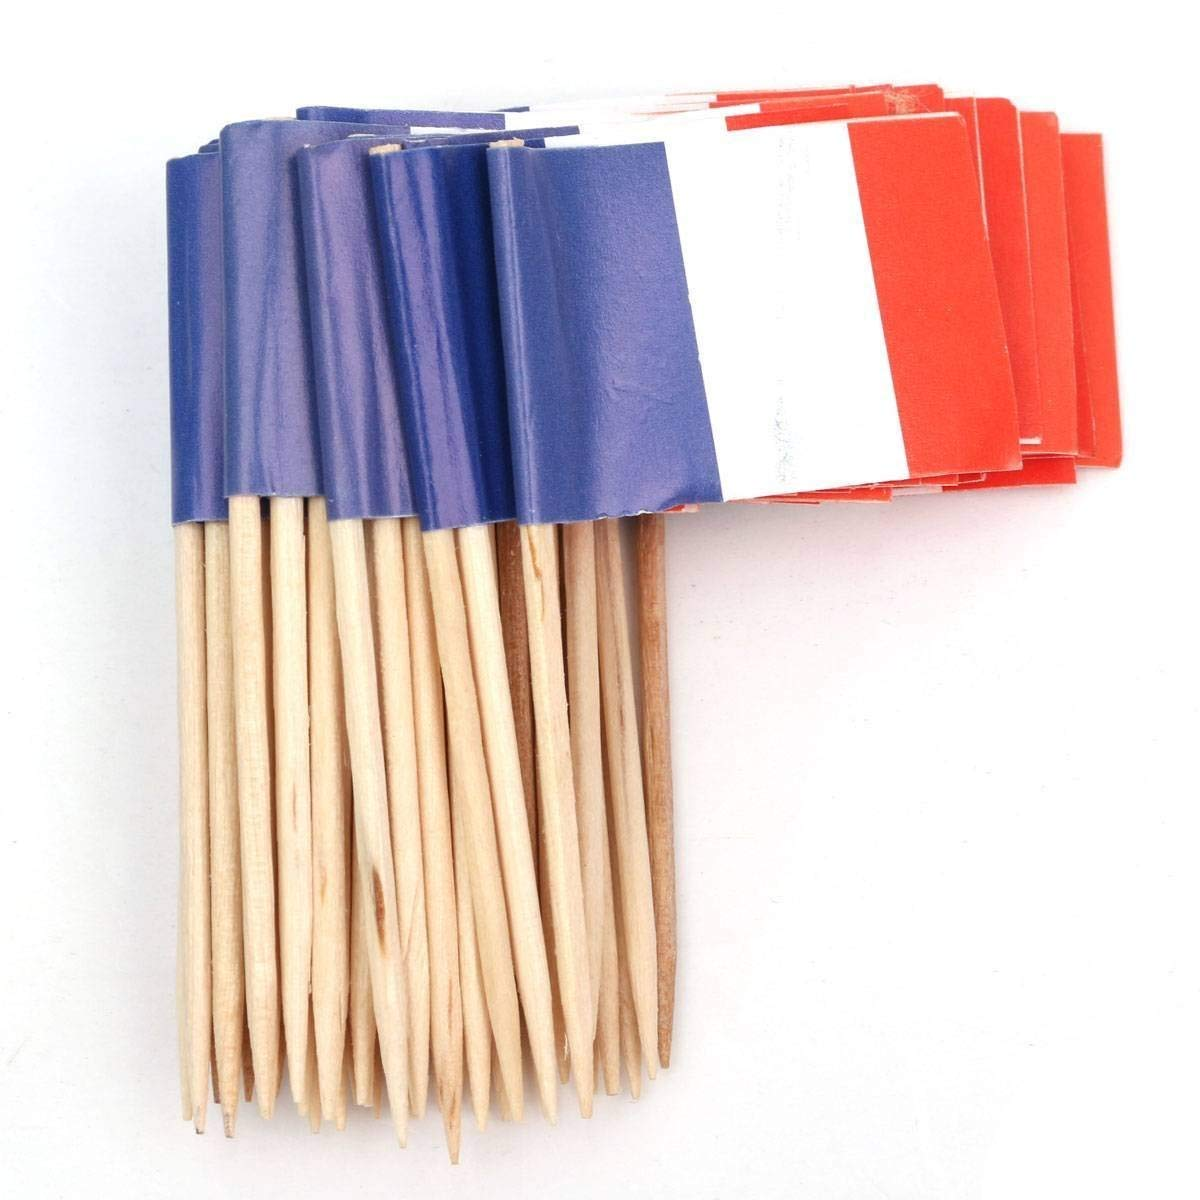 Funnytoday365 Lot Of 50Pcs Mini Wooden Toothpick With Flag For Decor Of Party Fruit Pastry - France (Blue White Red)